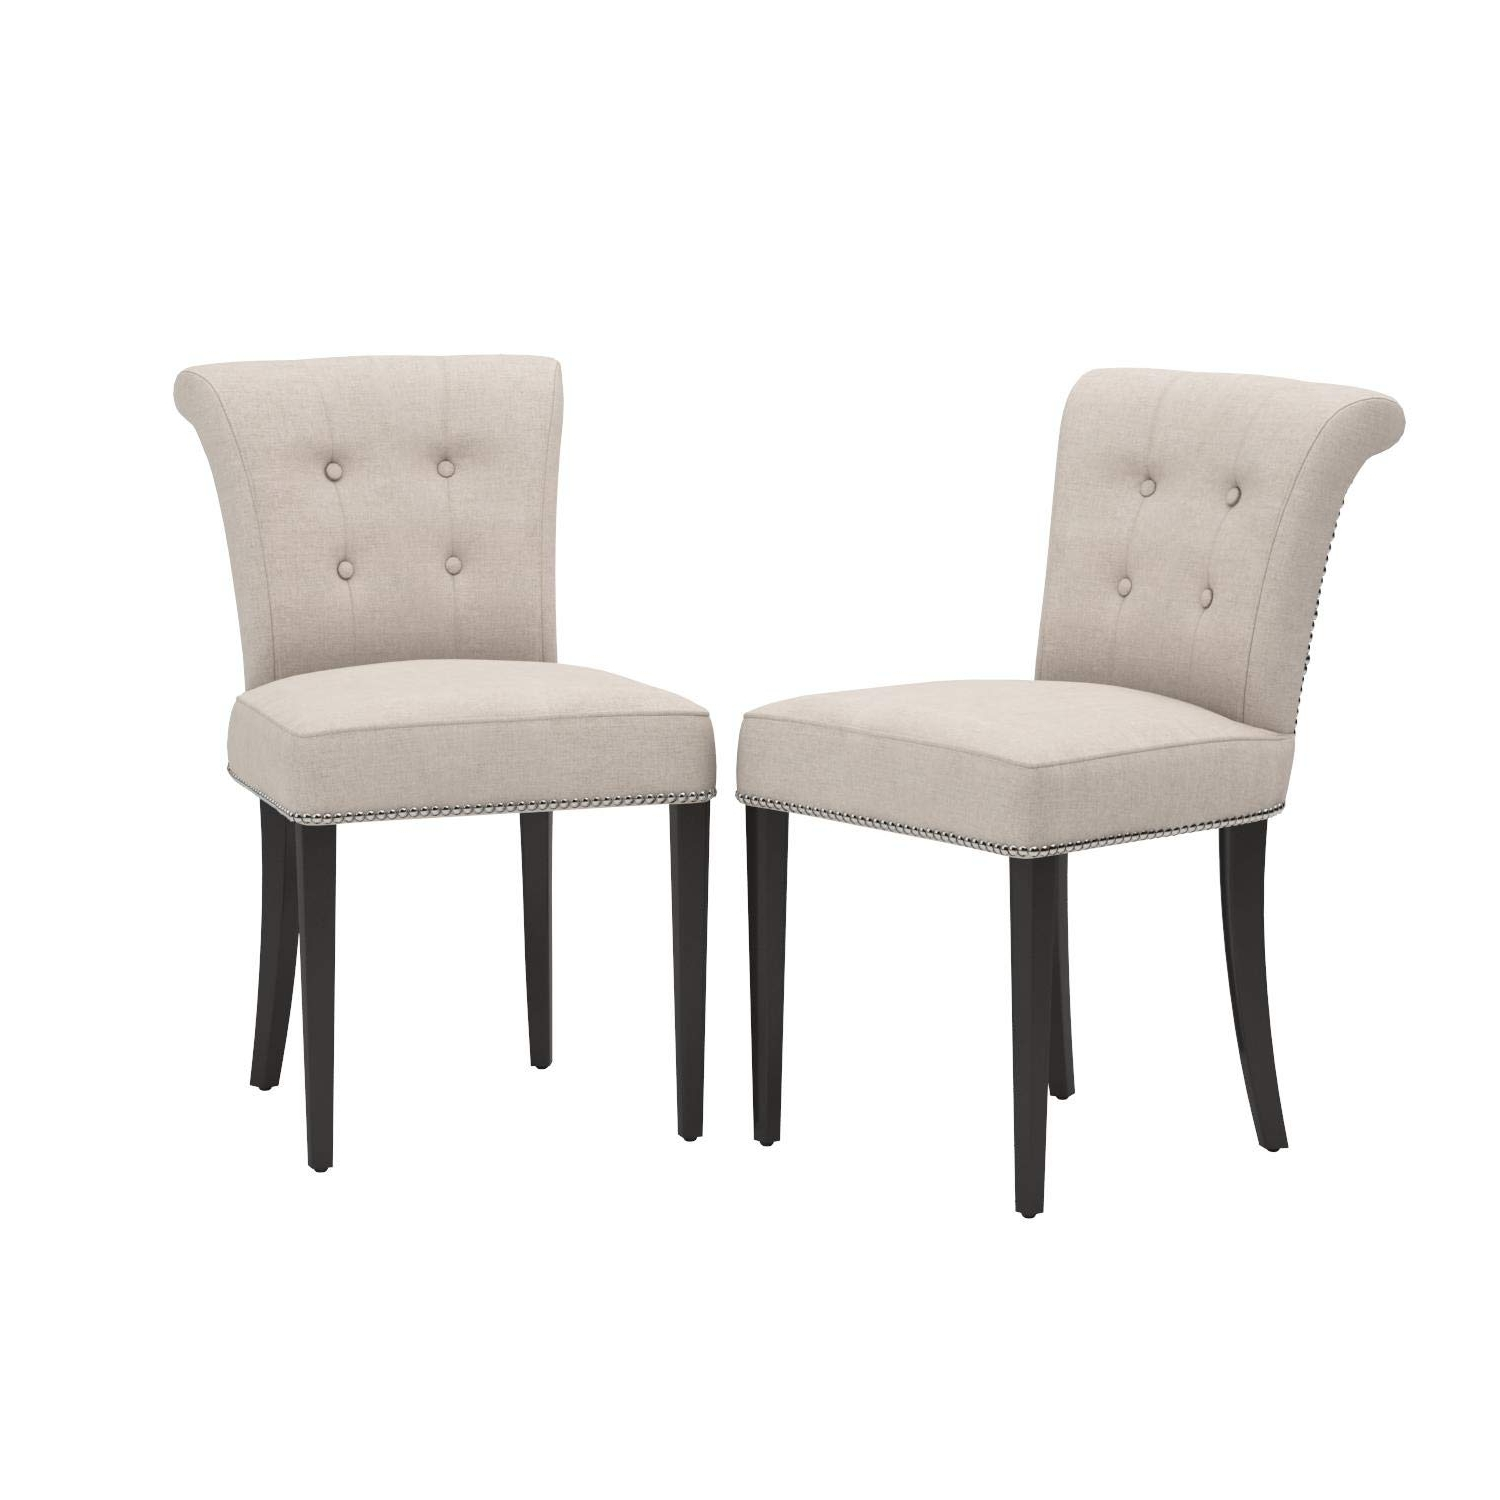 Amazon – Safavieh Mercer Collection Kyle Side Chairs, Taupe, Set Regarding Preferred Kyle Side Chairs (View 2 of 20)